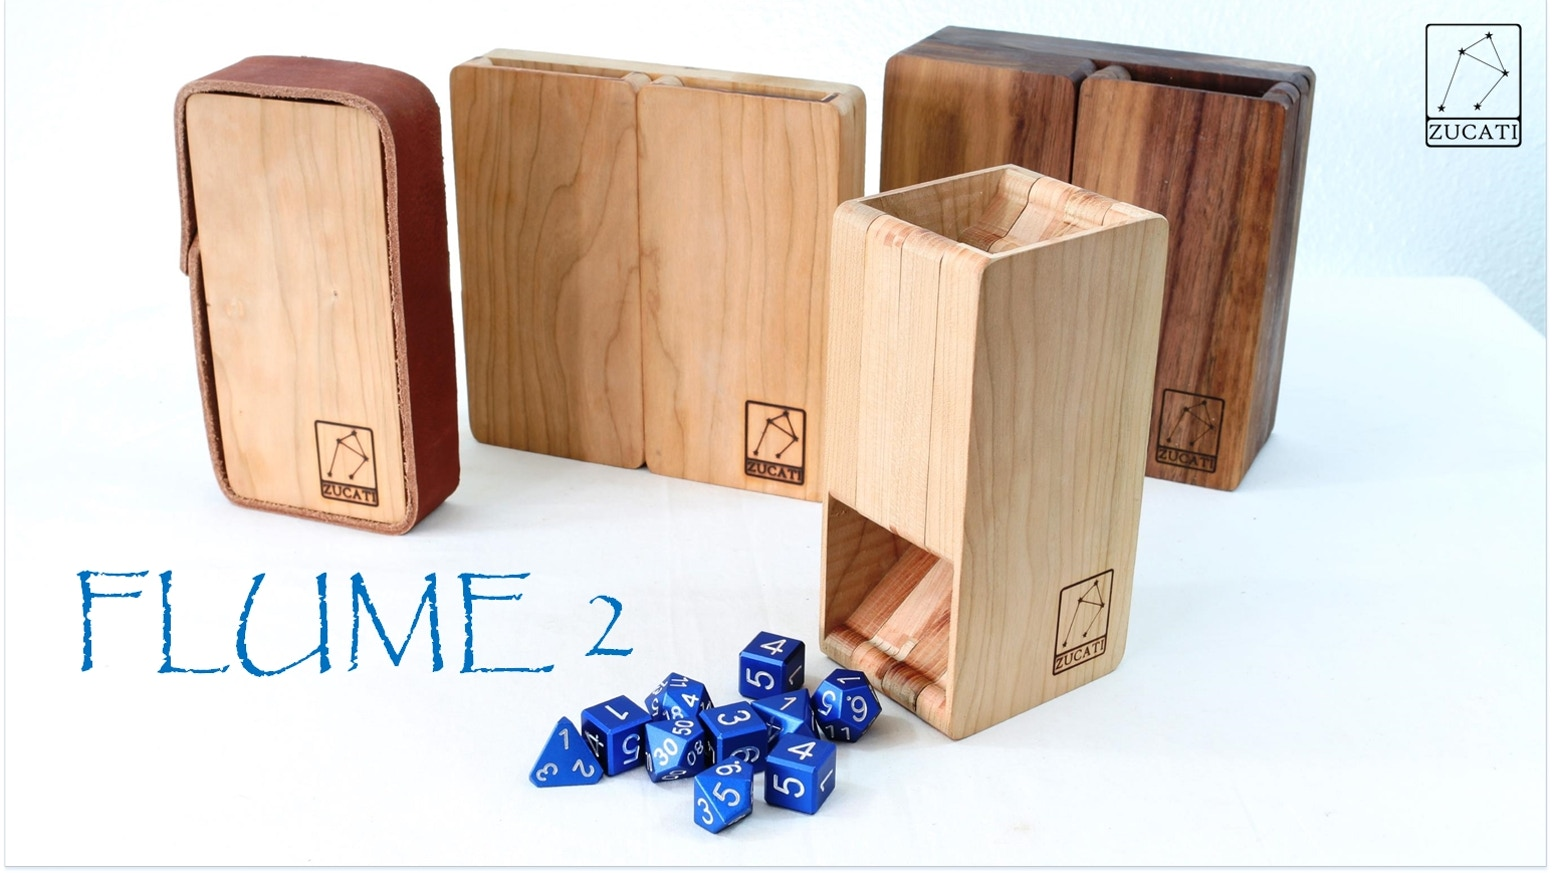 The best dice tower (we've) ever made. Hard and exotic woods. Portable, modular, simple, and feature packed. Board Games and RPG ready